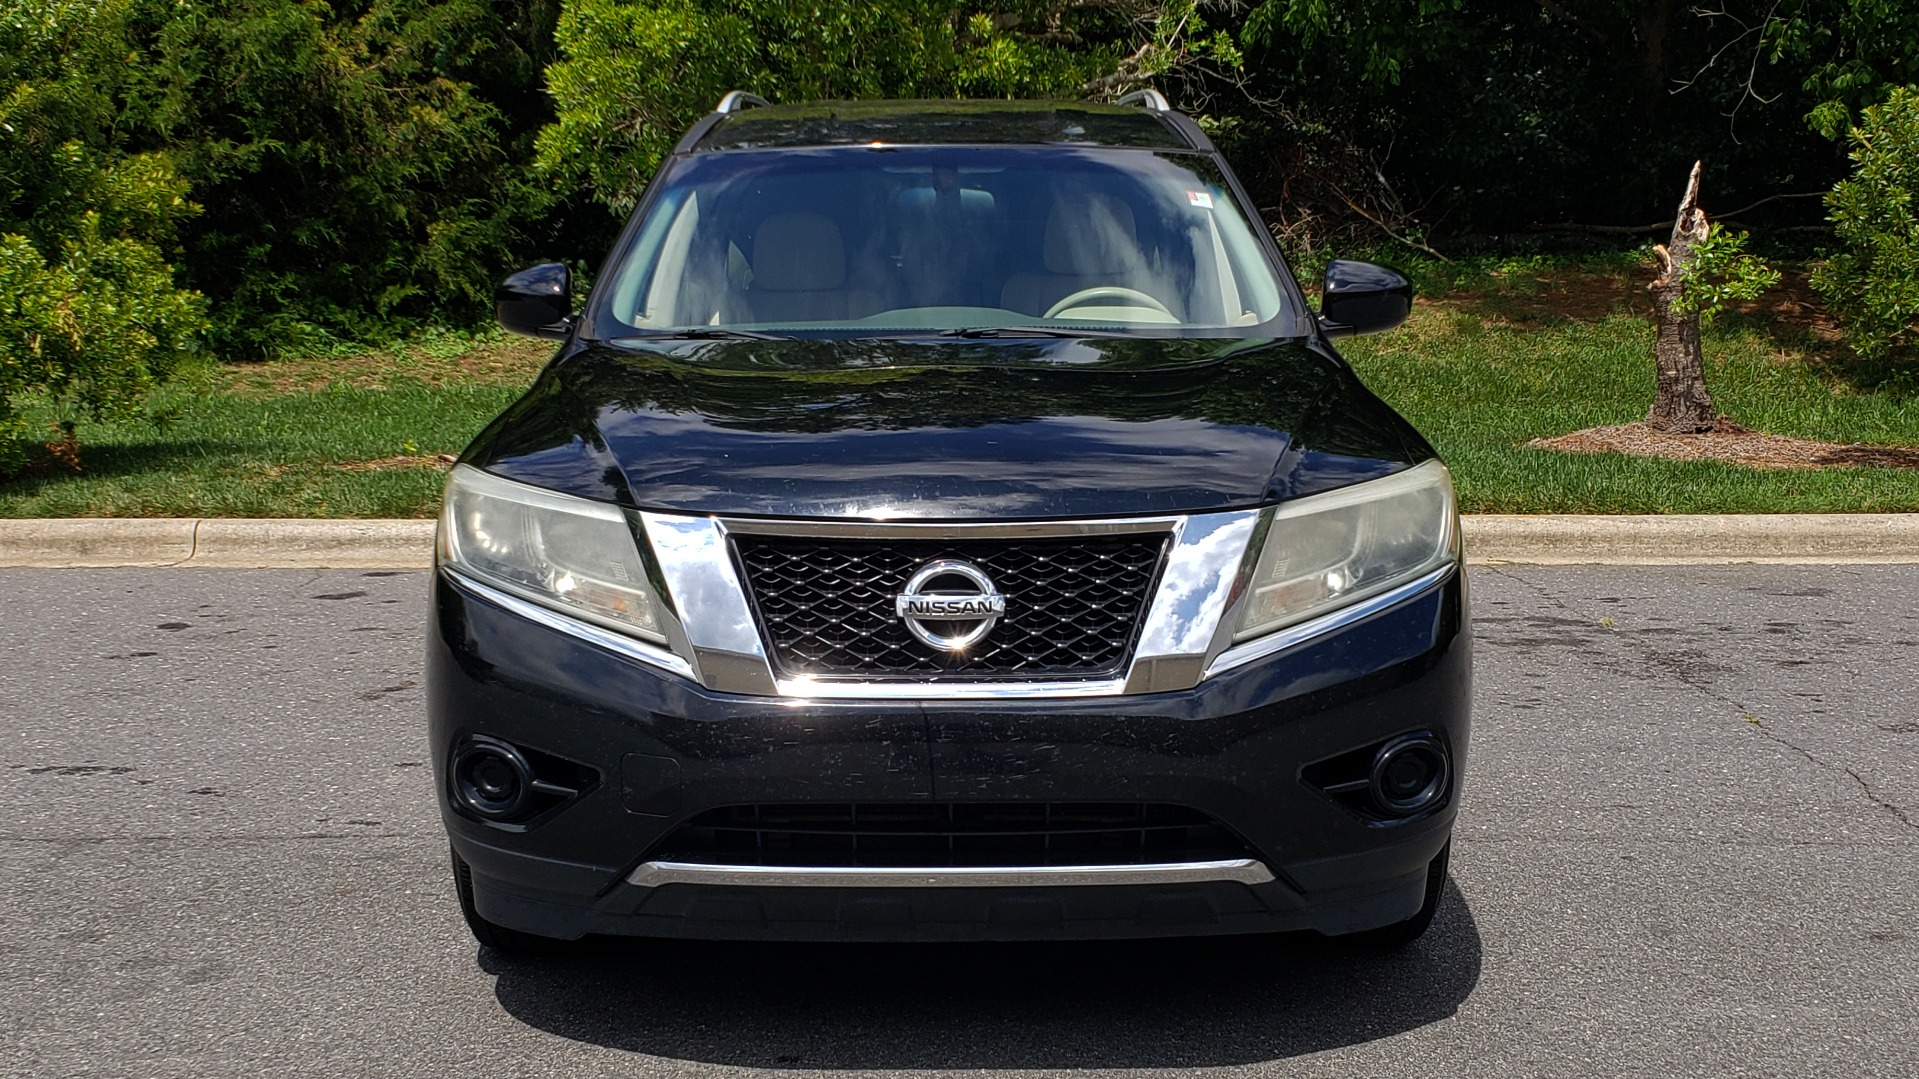 Used 2013 Nissan PATHFINDER SV 3.5L V6 / 3-ROW SEATING / TRAILER HITCH / REARVIEW for sale Sold at Formula Imports in Charlotte NC 28227 18